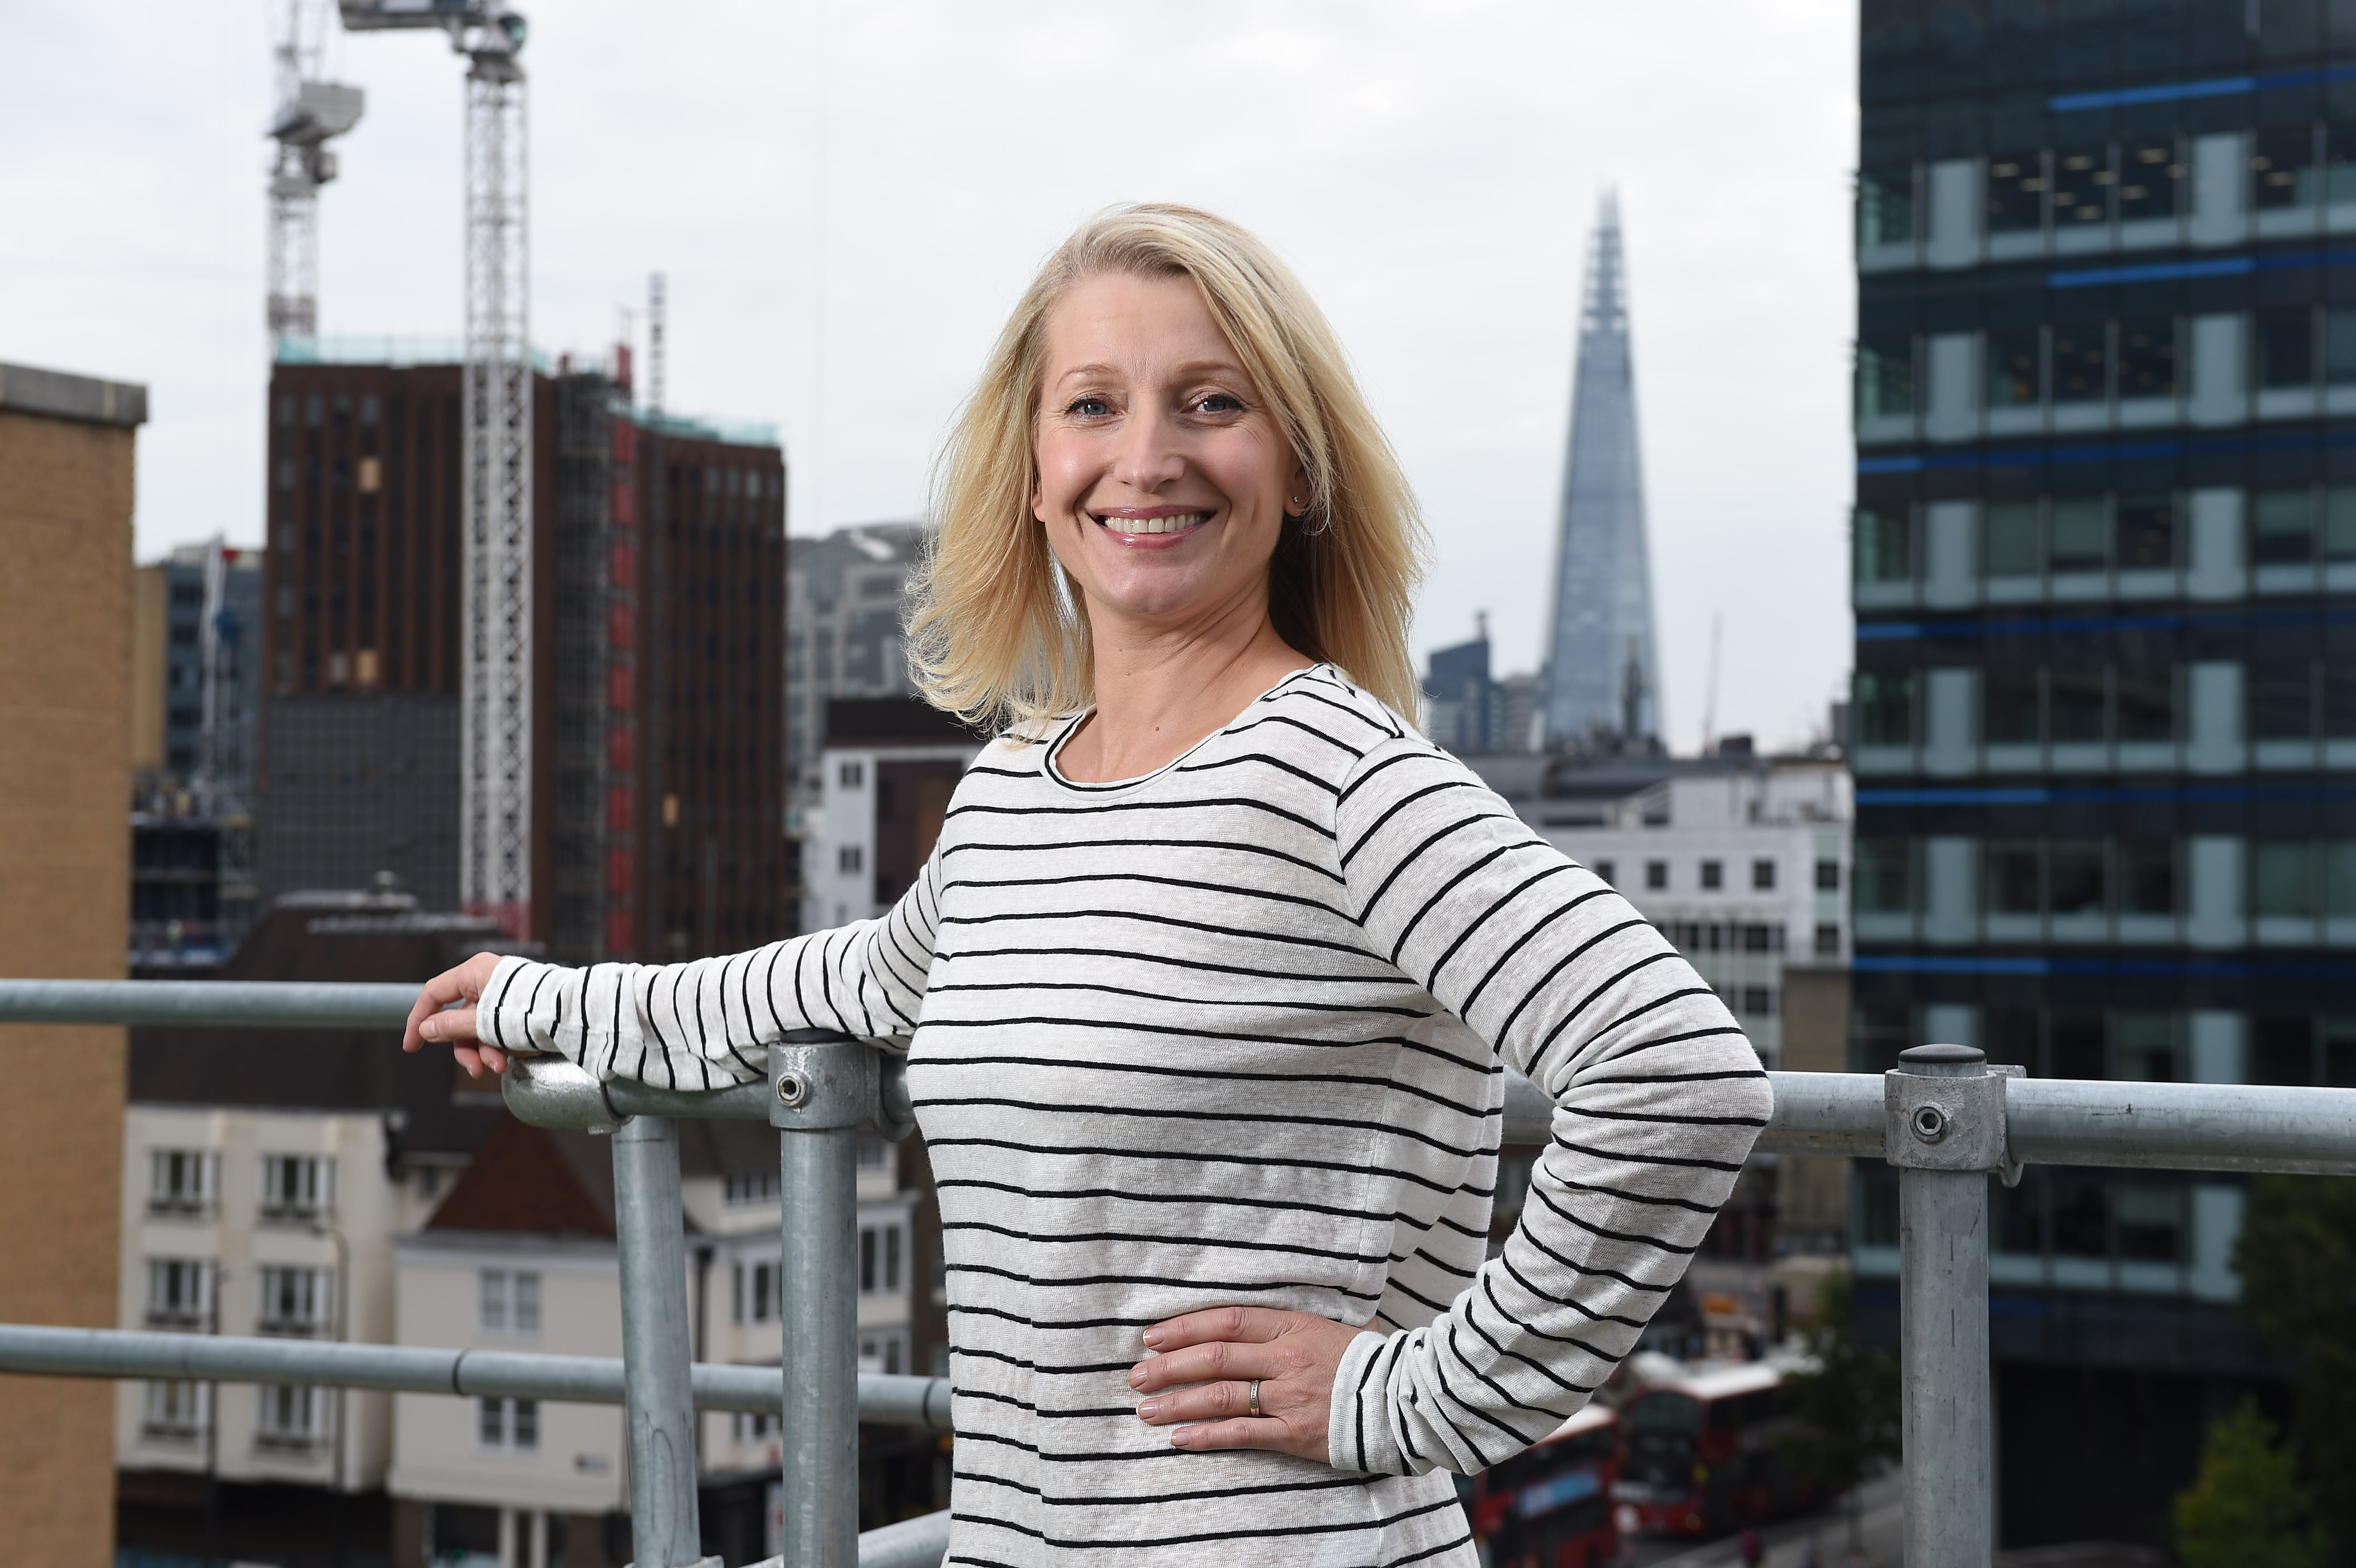 Women in Construction UK Magazine: An interview with Sian